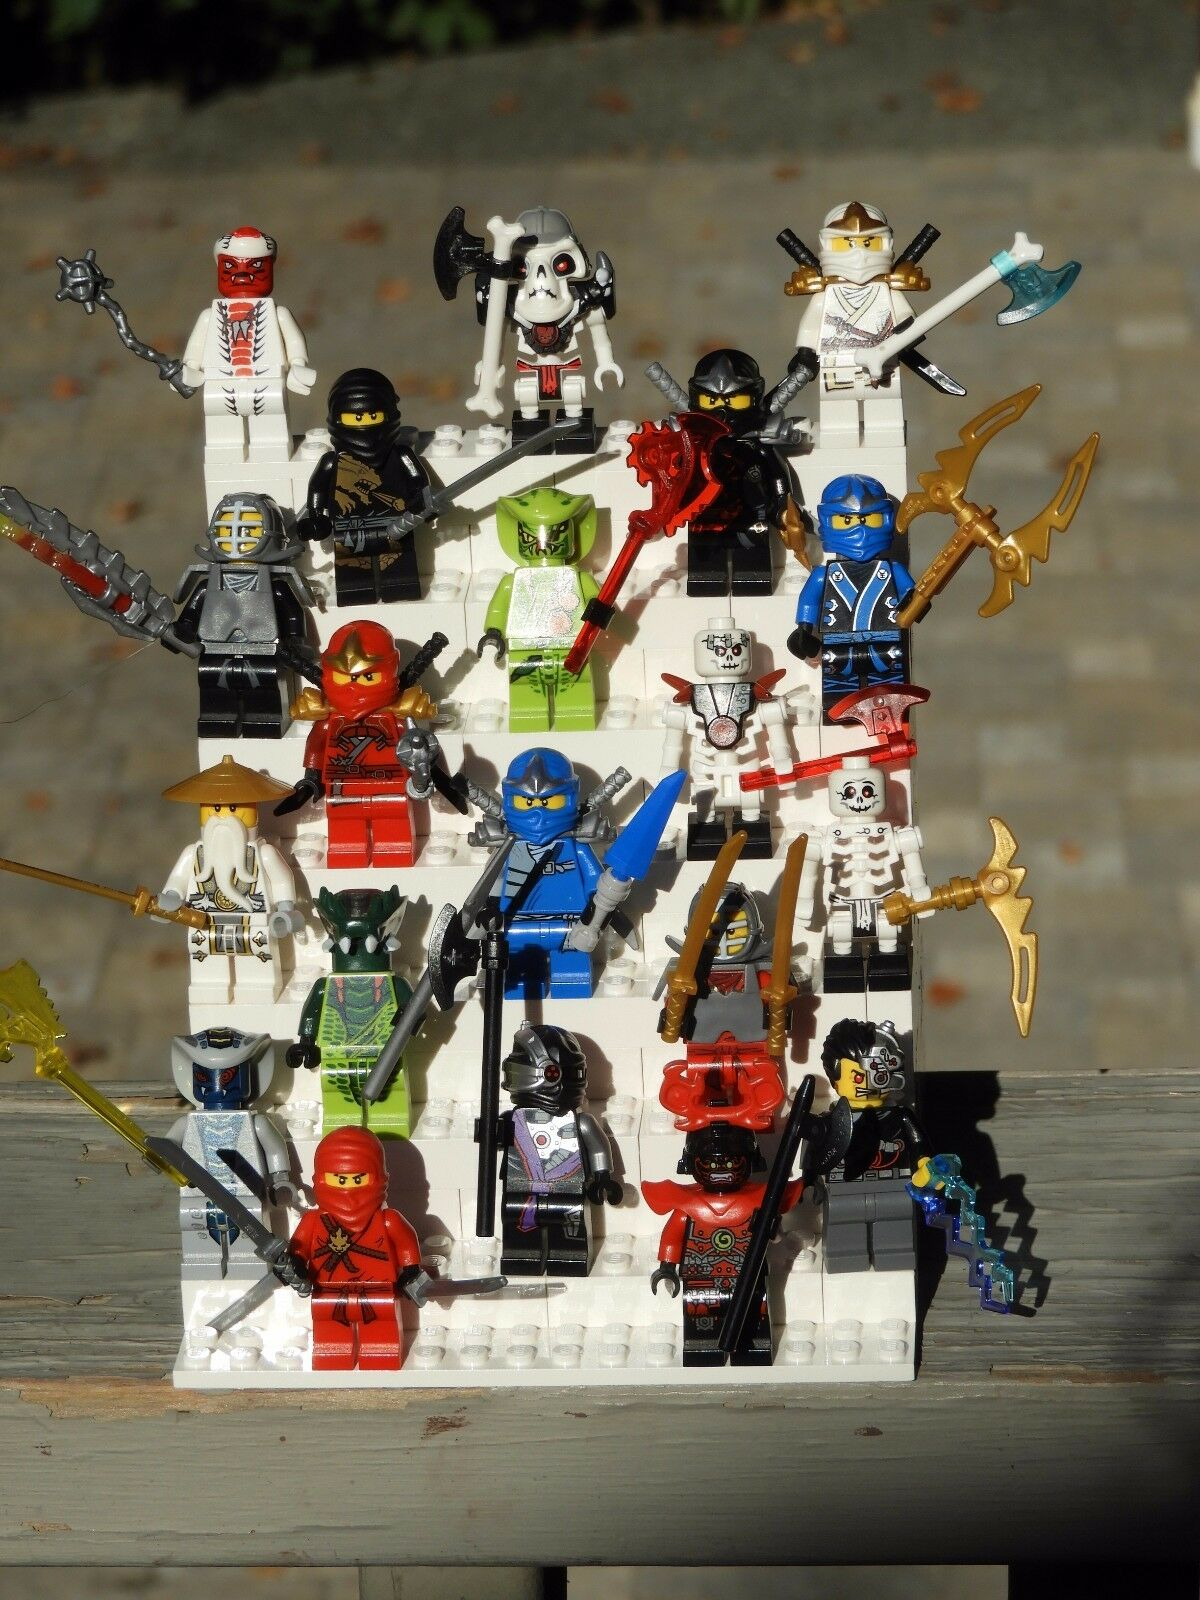 ROTUCED Lot of 20 Ninjago Genuine LEGO Minifigures with Weapons - As Shown -